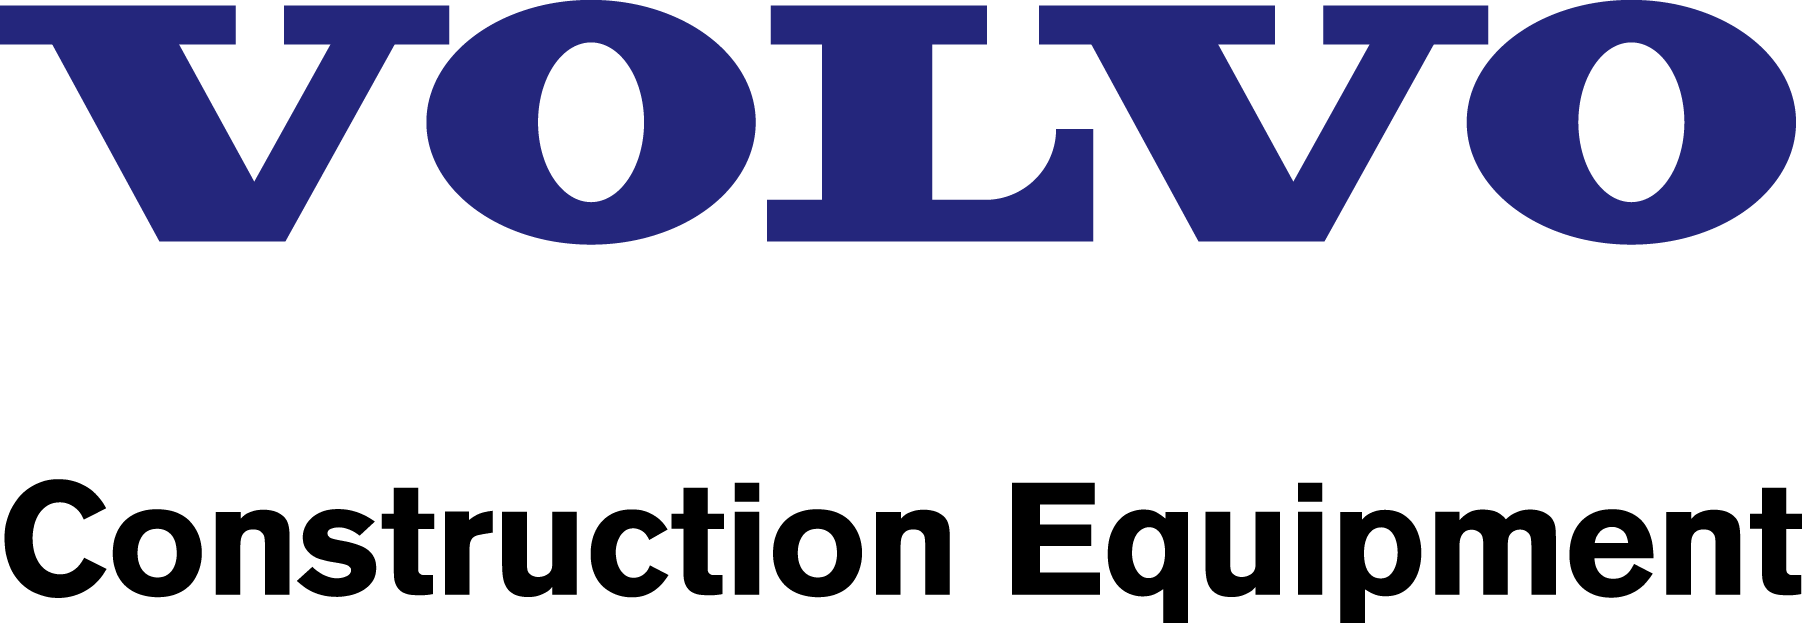 Volvo-Construction-Equipment-logo